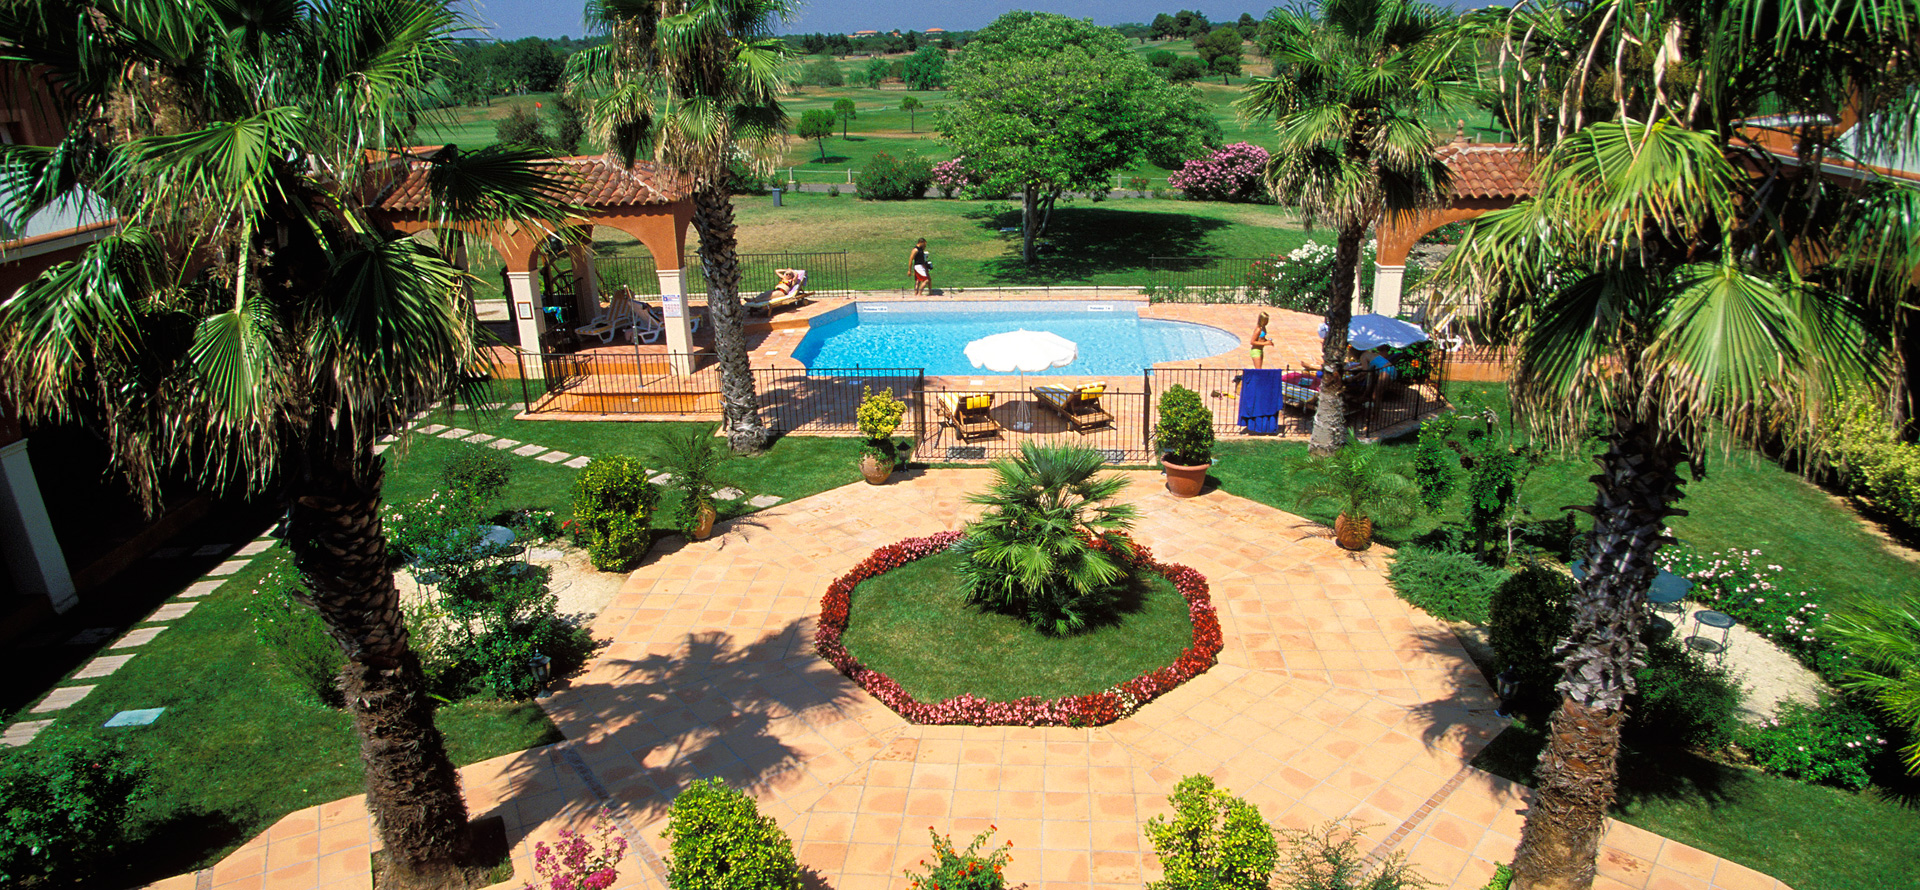 Garden with outdoor pool at the Palmyra Golf hotel in Cap d'Agde